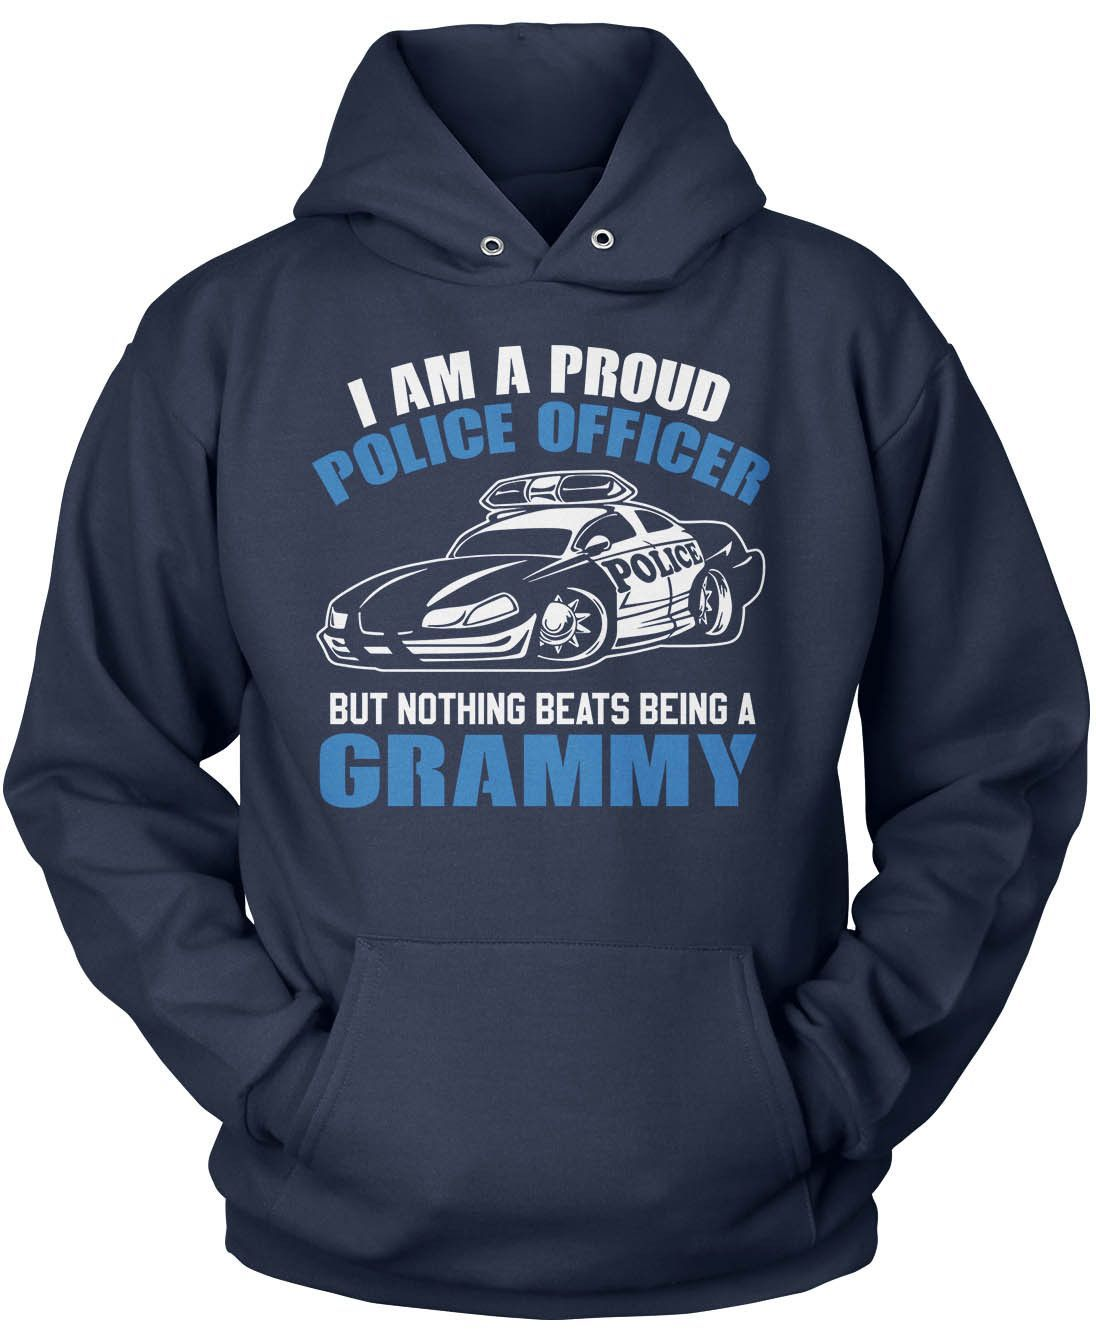 Proud Police Officer - Nothing Beats Being a Grammy